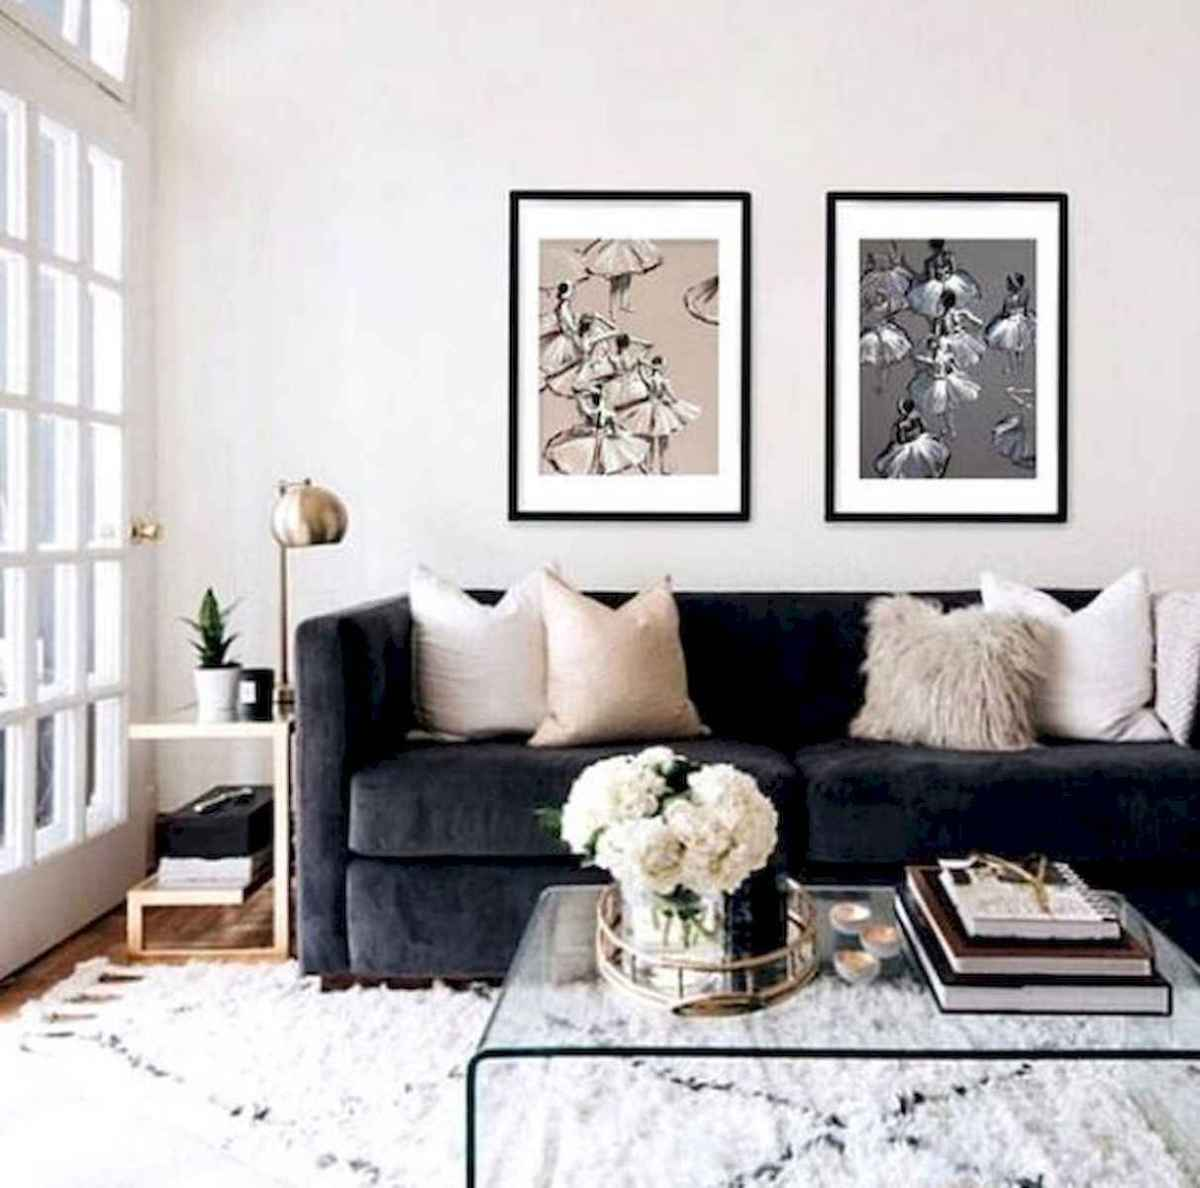 70 Stunning Grey White Black Living Room Decor Ideas And Remodel (42)